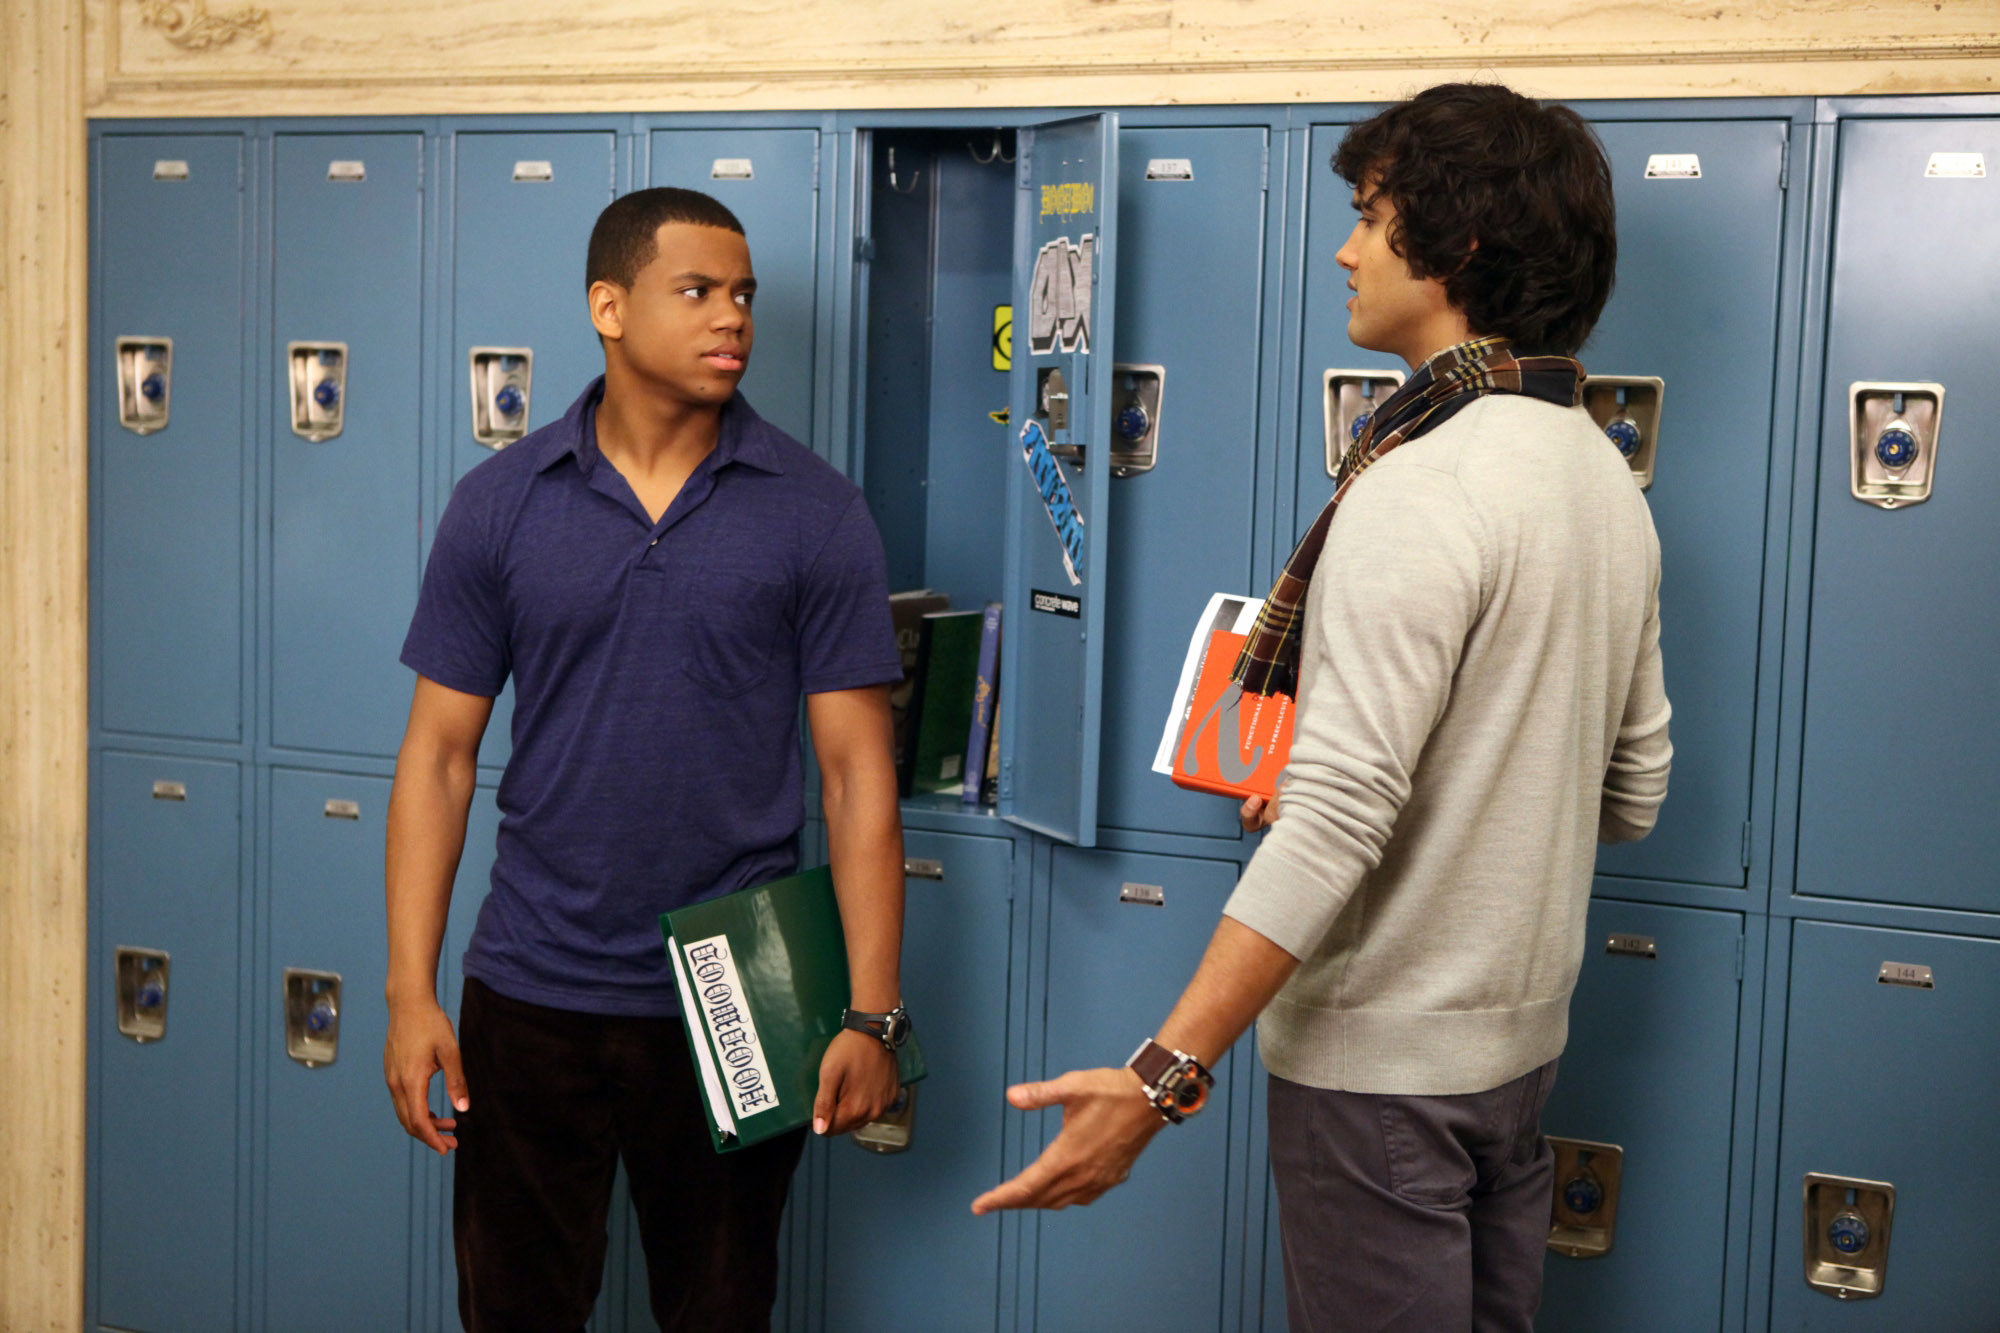 Dixon and Navid talking in the hall on 90210